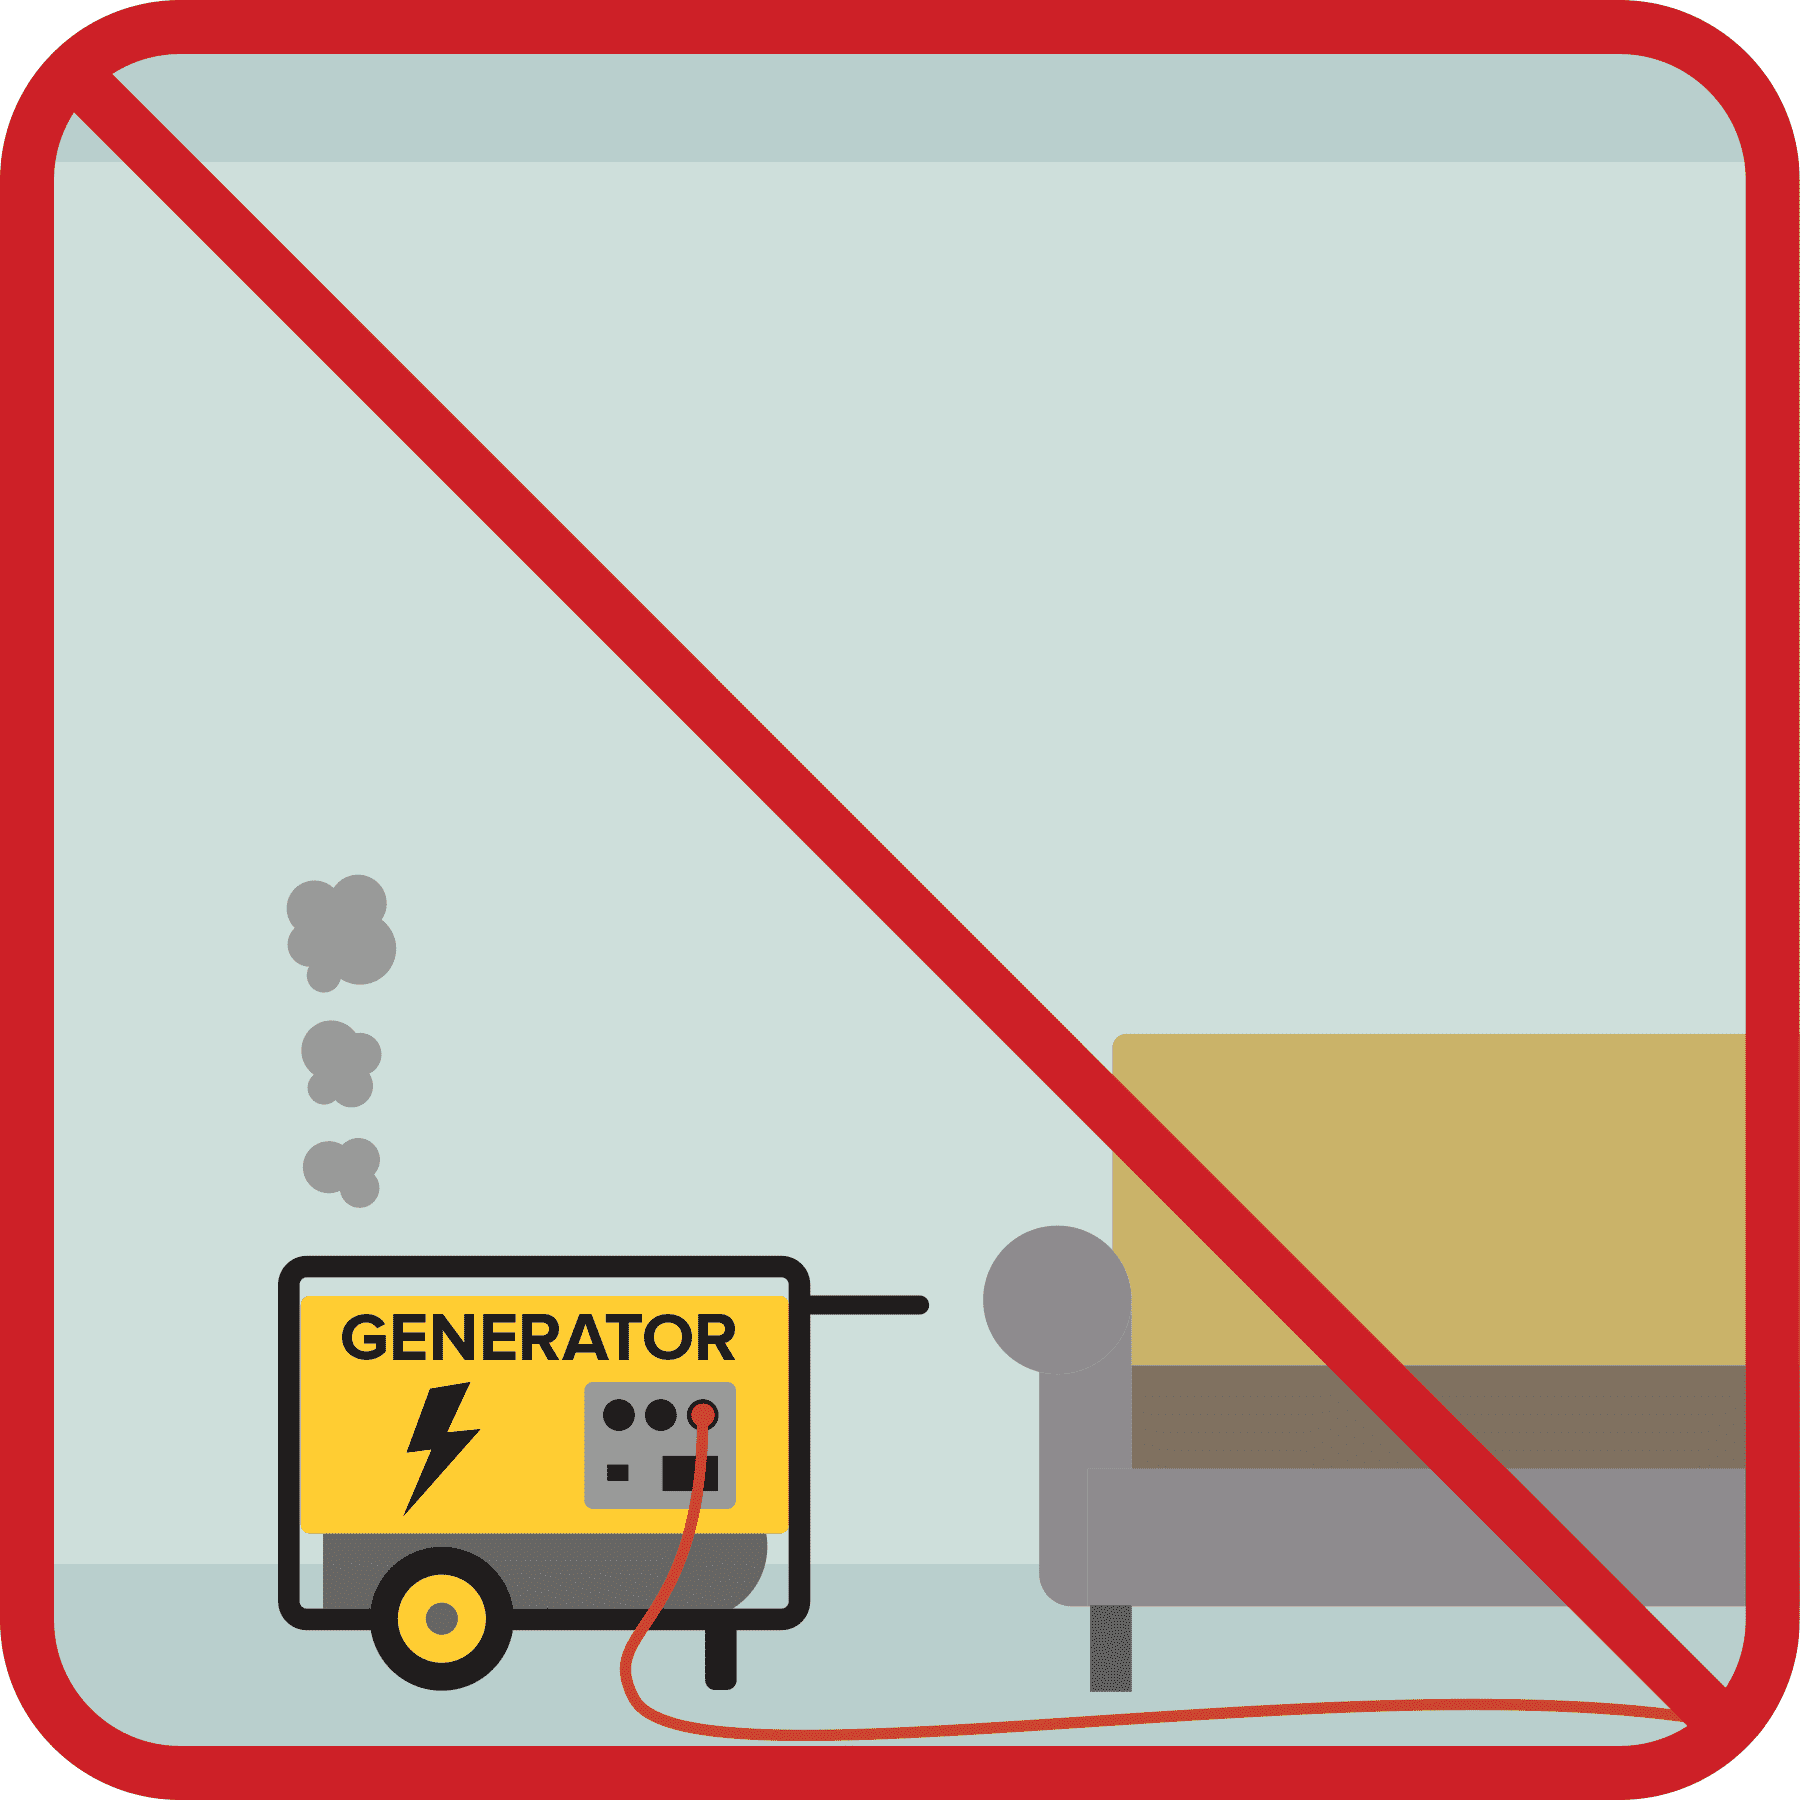 Generator inside a home with a red no sign.